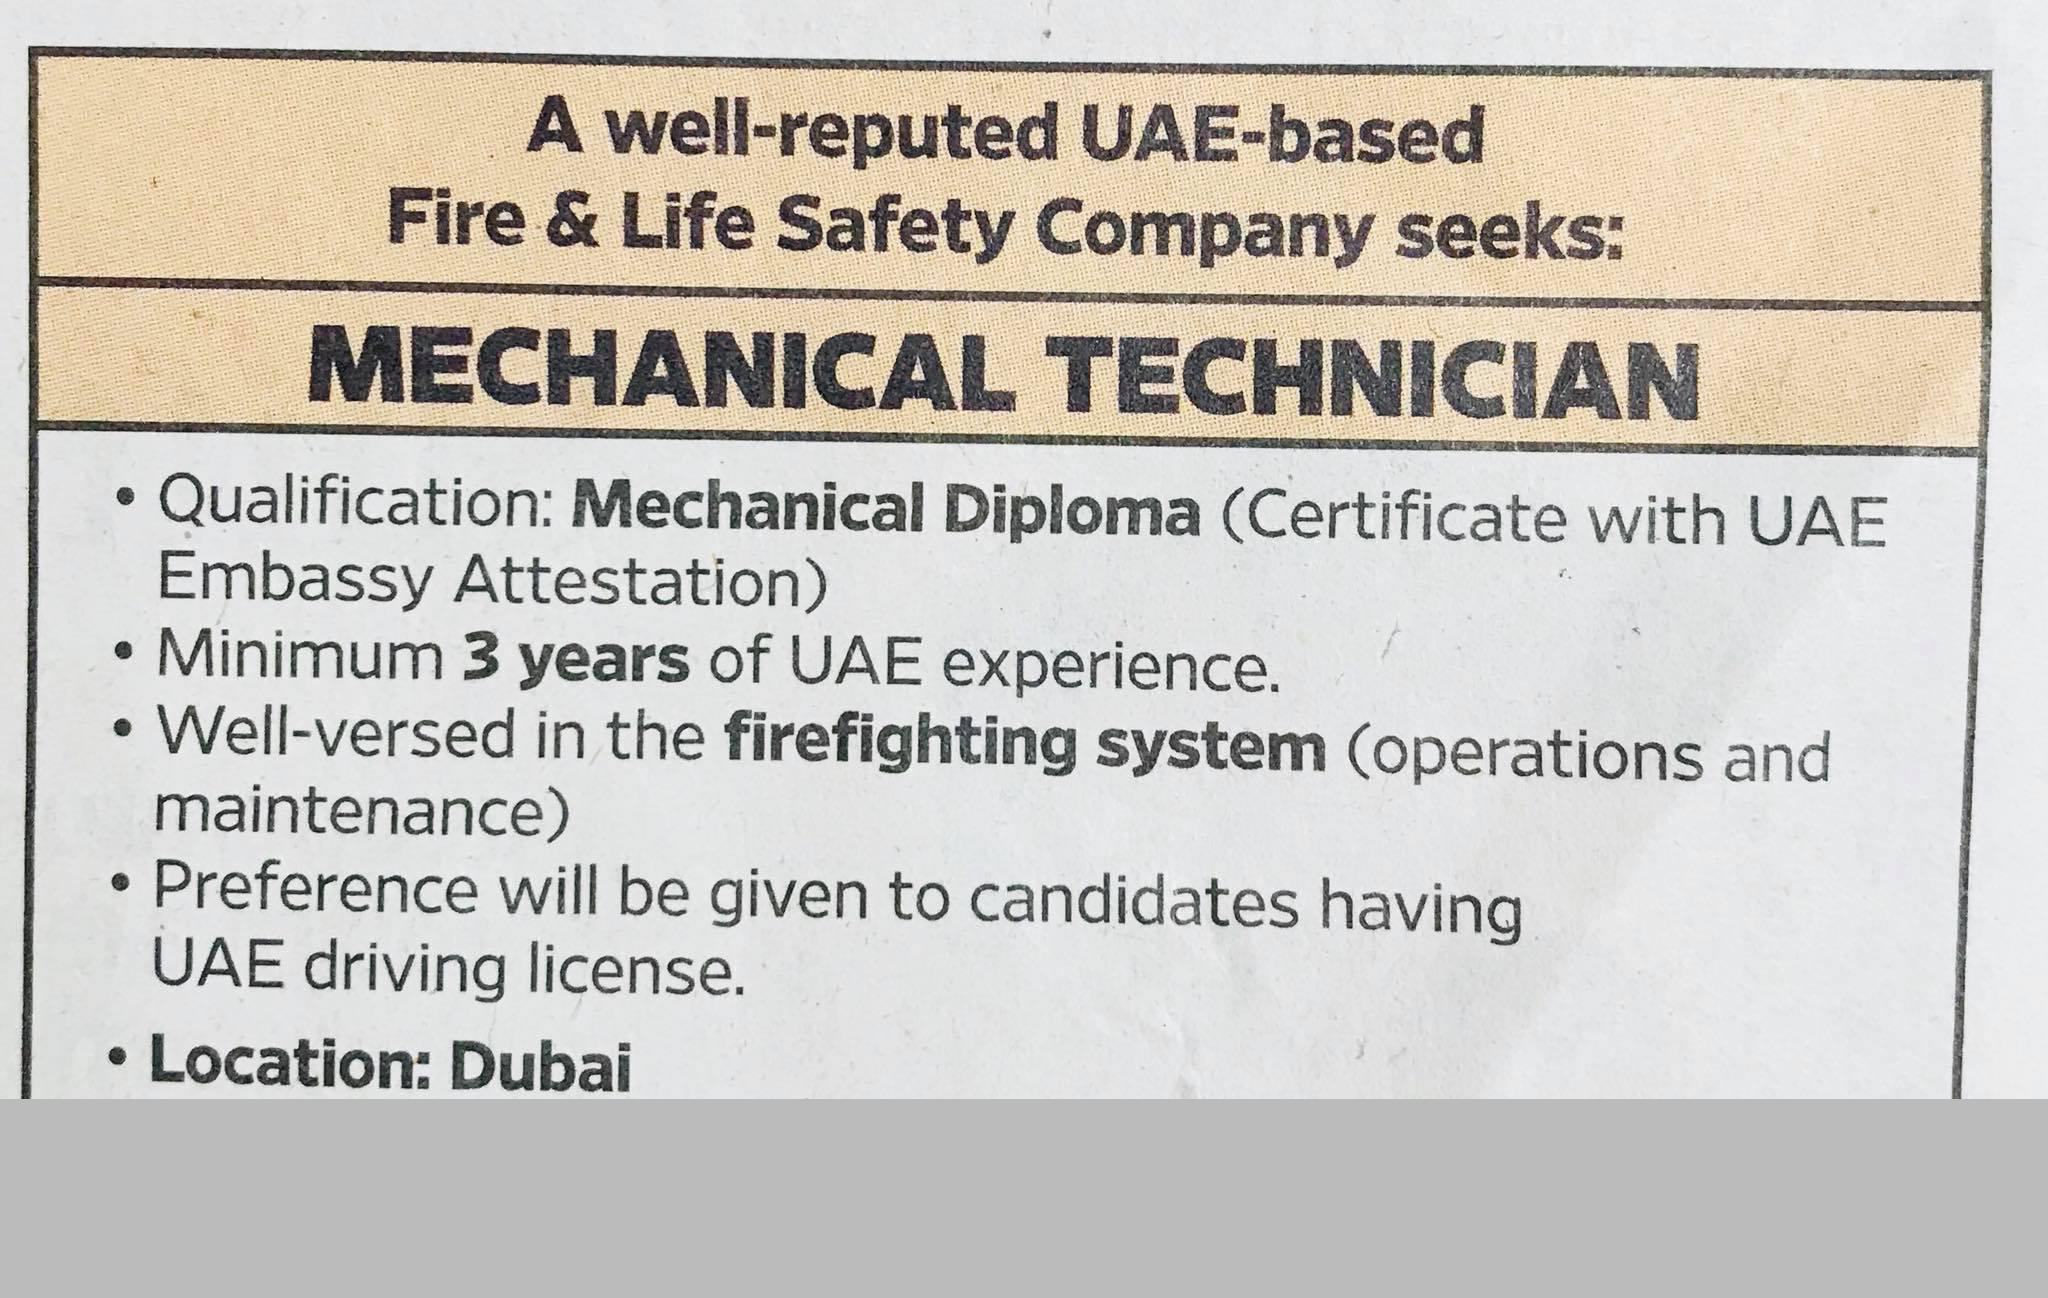 Mechanical Technician for a Well Reputed Fire and Safety Company